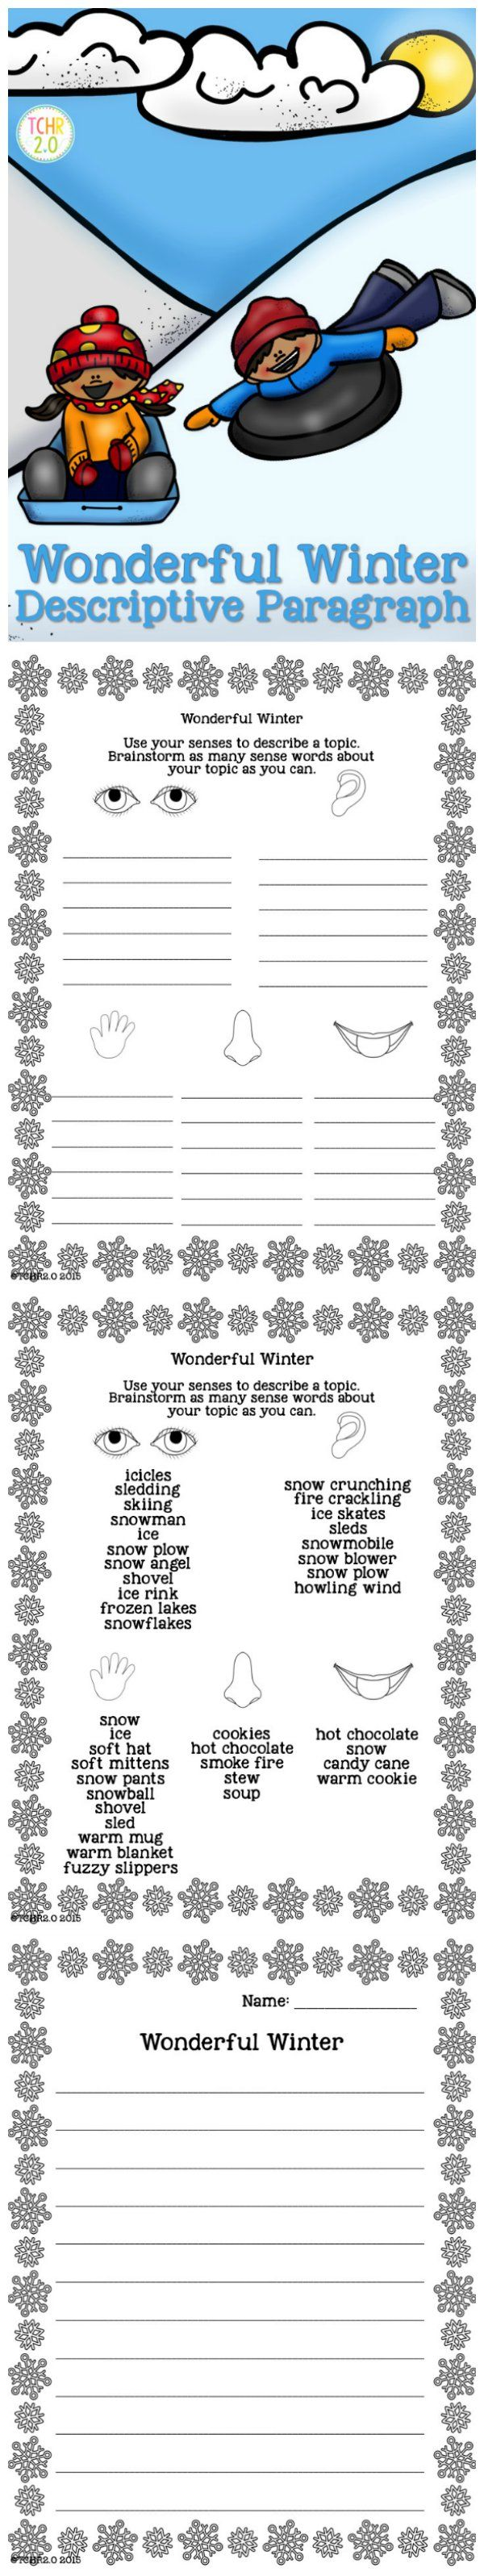 effective essay tips about winter descriptive writing winter printable parent resources i abcteach provides over 49 000 worksheets page 1 what do you think the symbolism of winter is in relation to the human